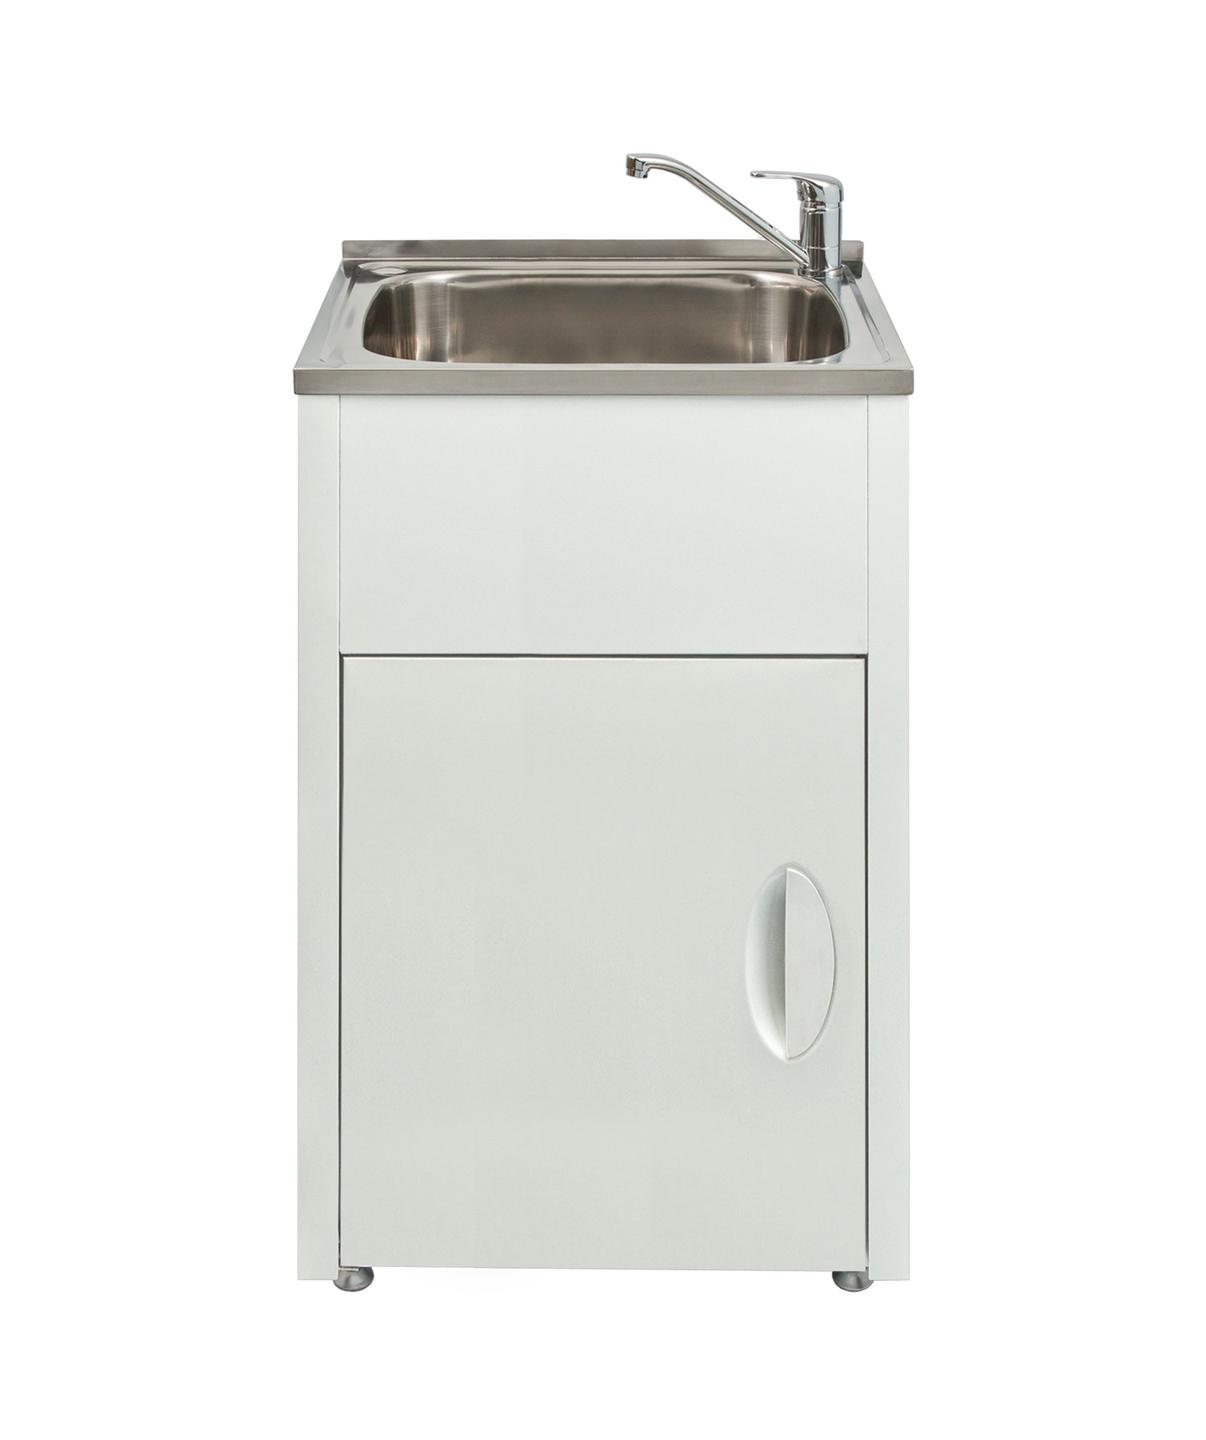 OROS 620 ARQSTONE KITCHEN LAUNDRY SINK